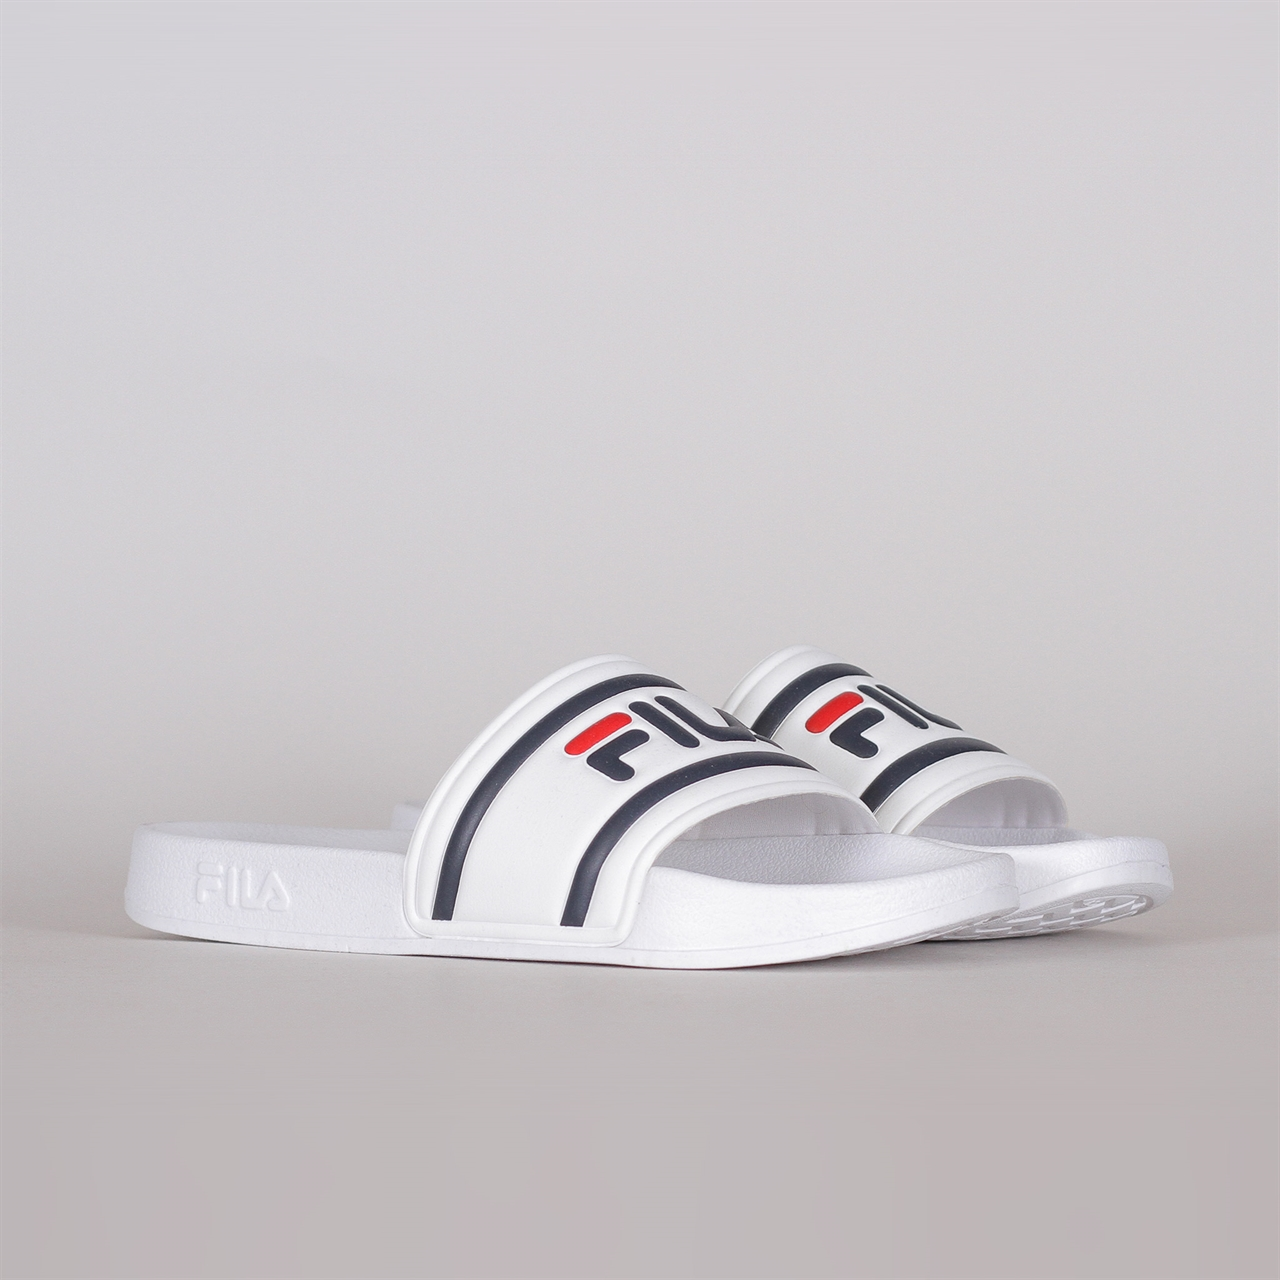 eb507ba81fcc7 Shelta - Fila Morro Bay Slipper (1010286-1FG)